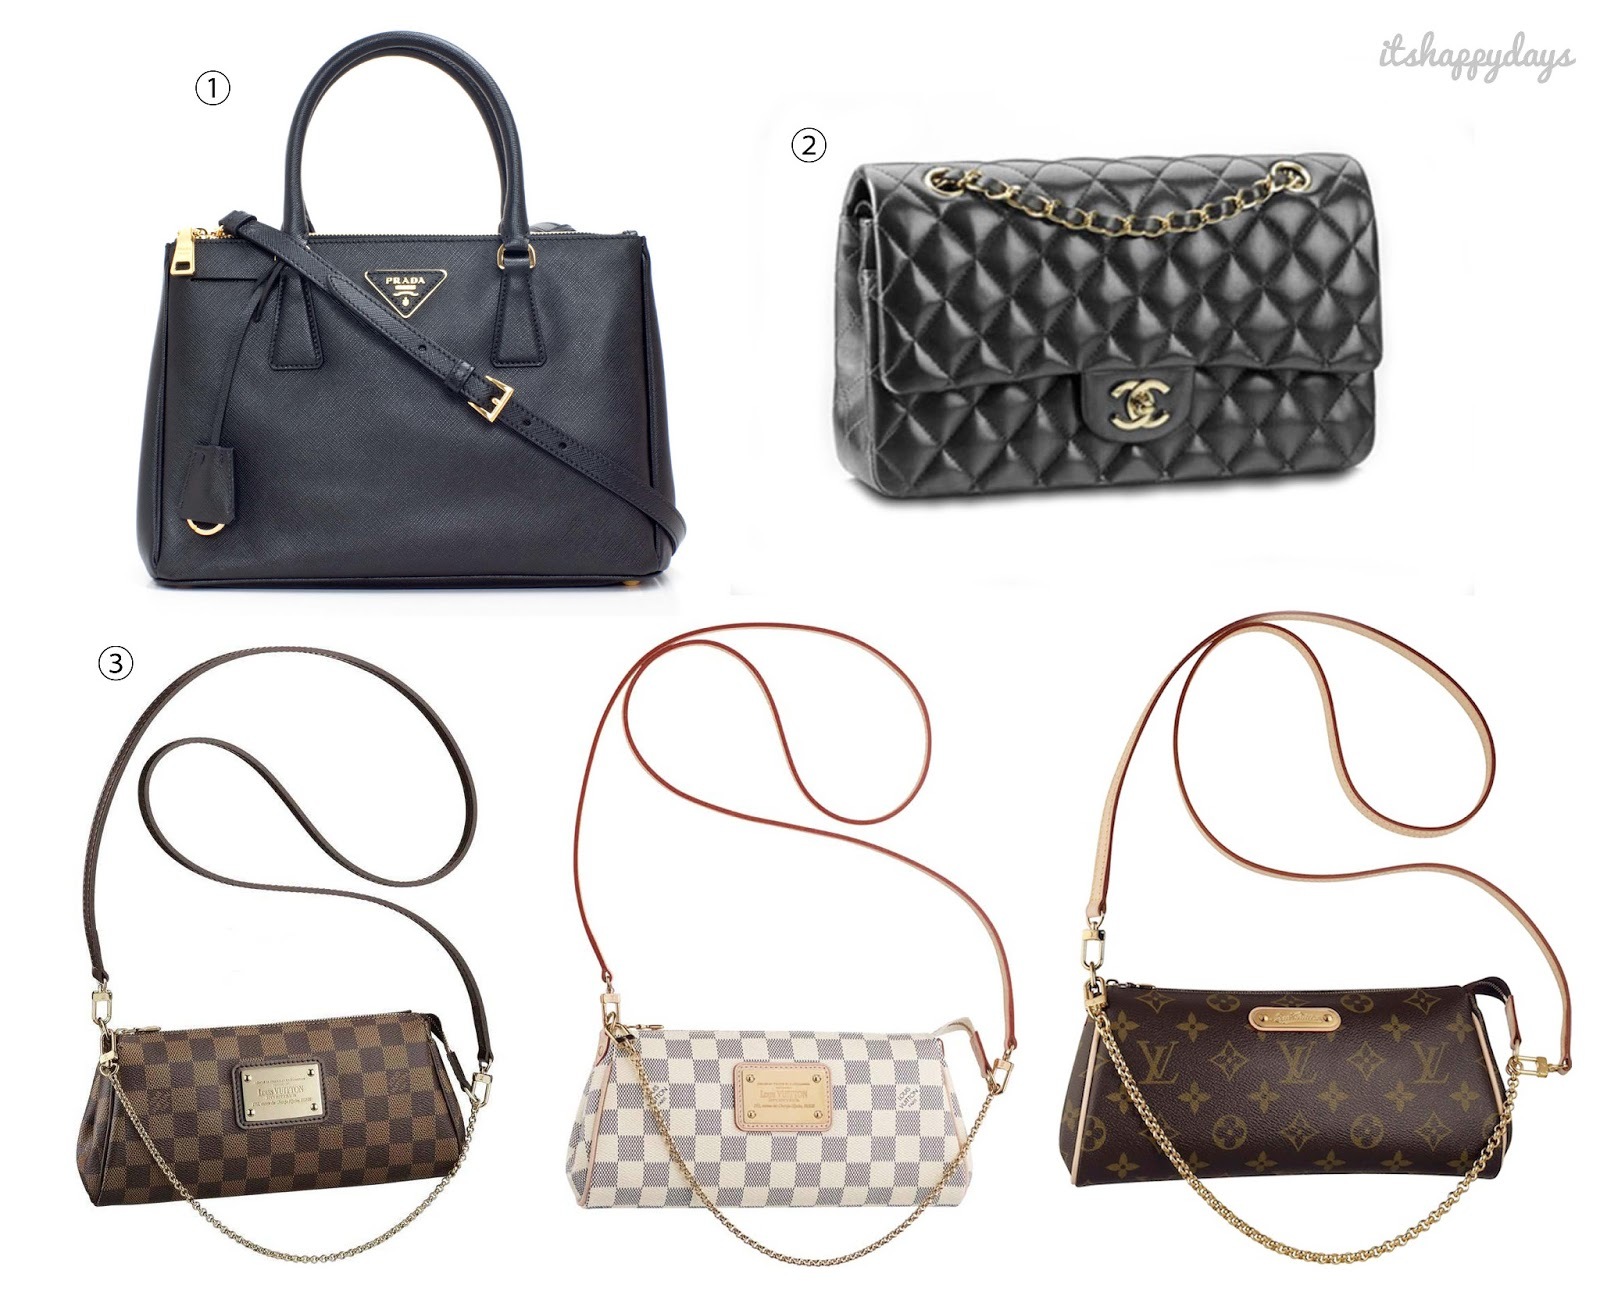 prada bags and prices